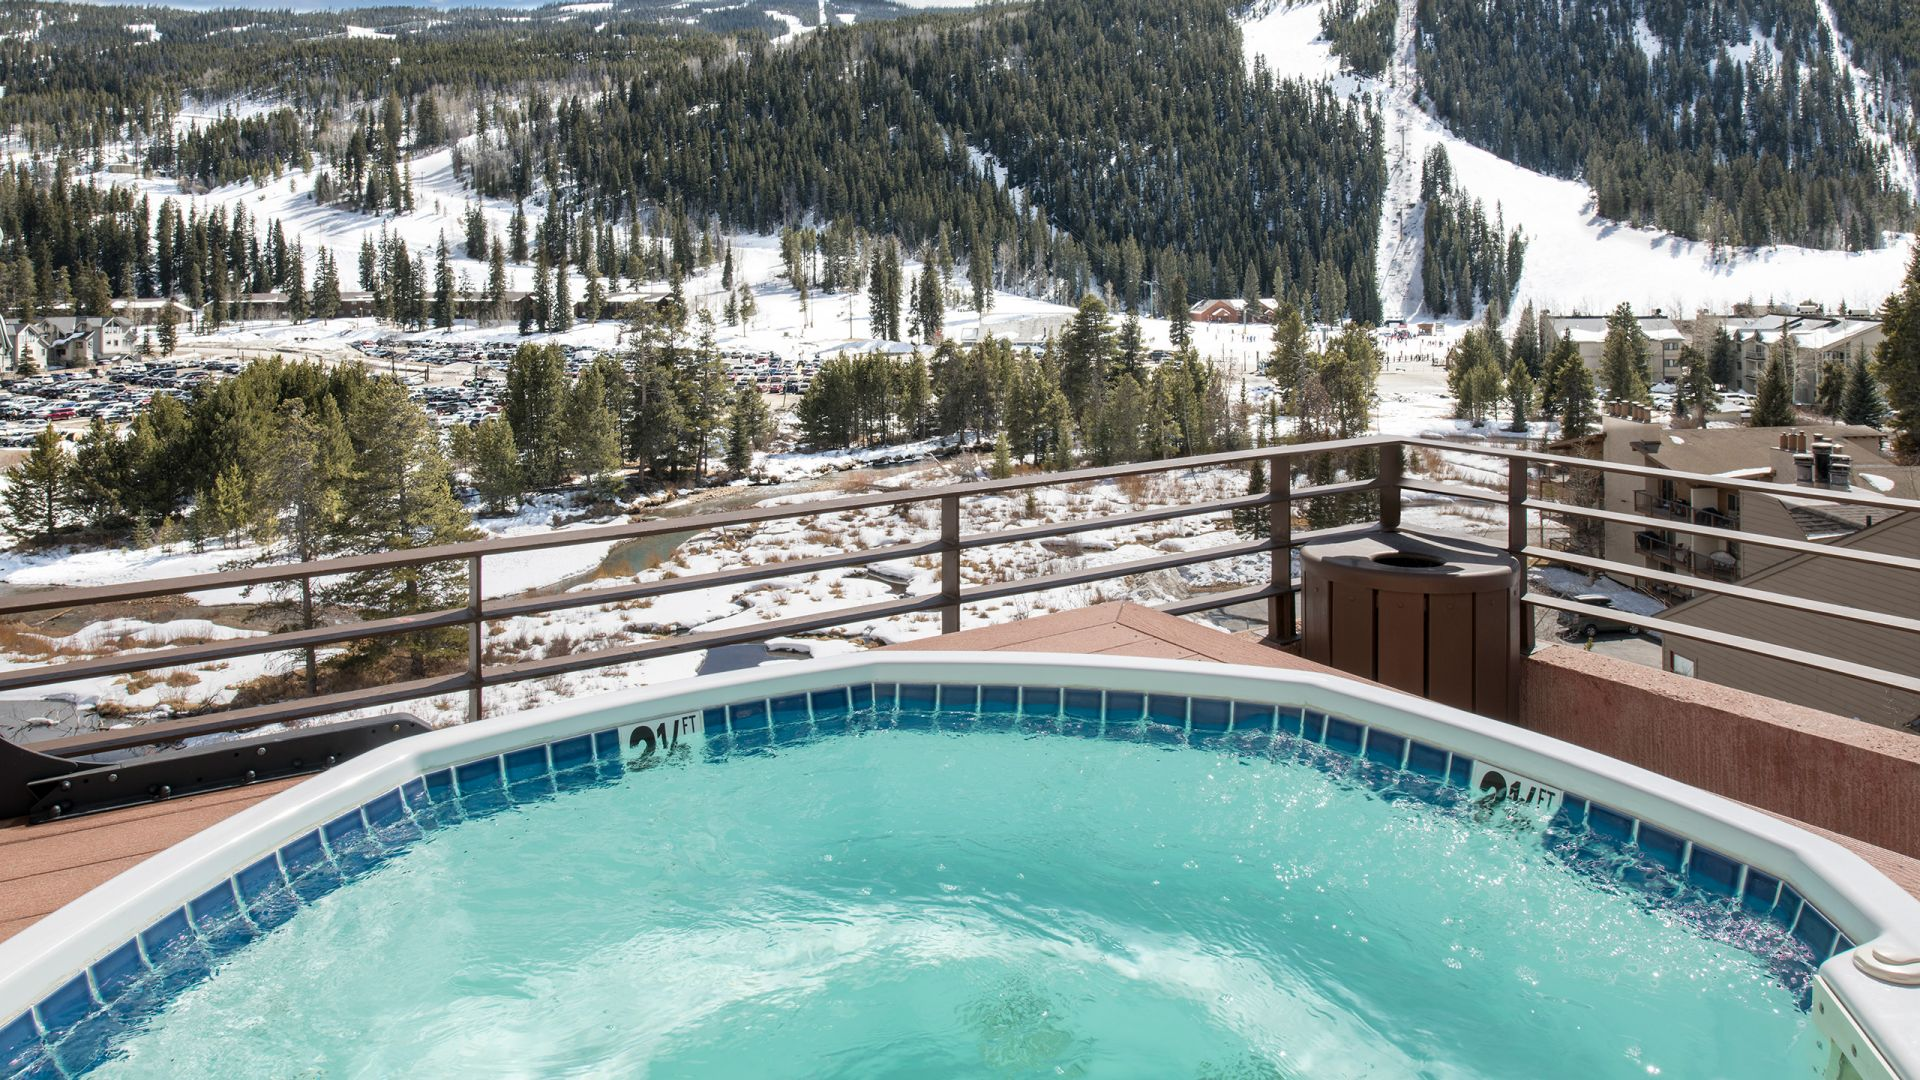 Hot tub with mountains